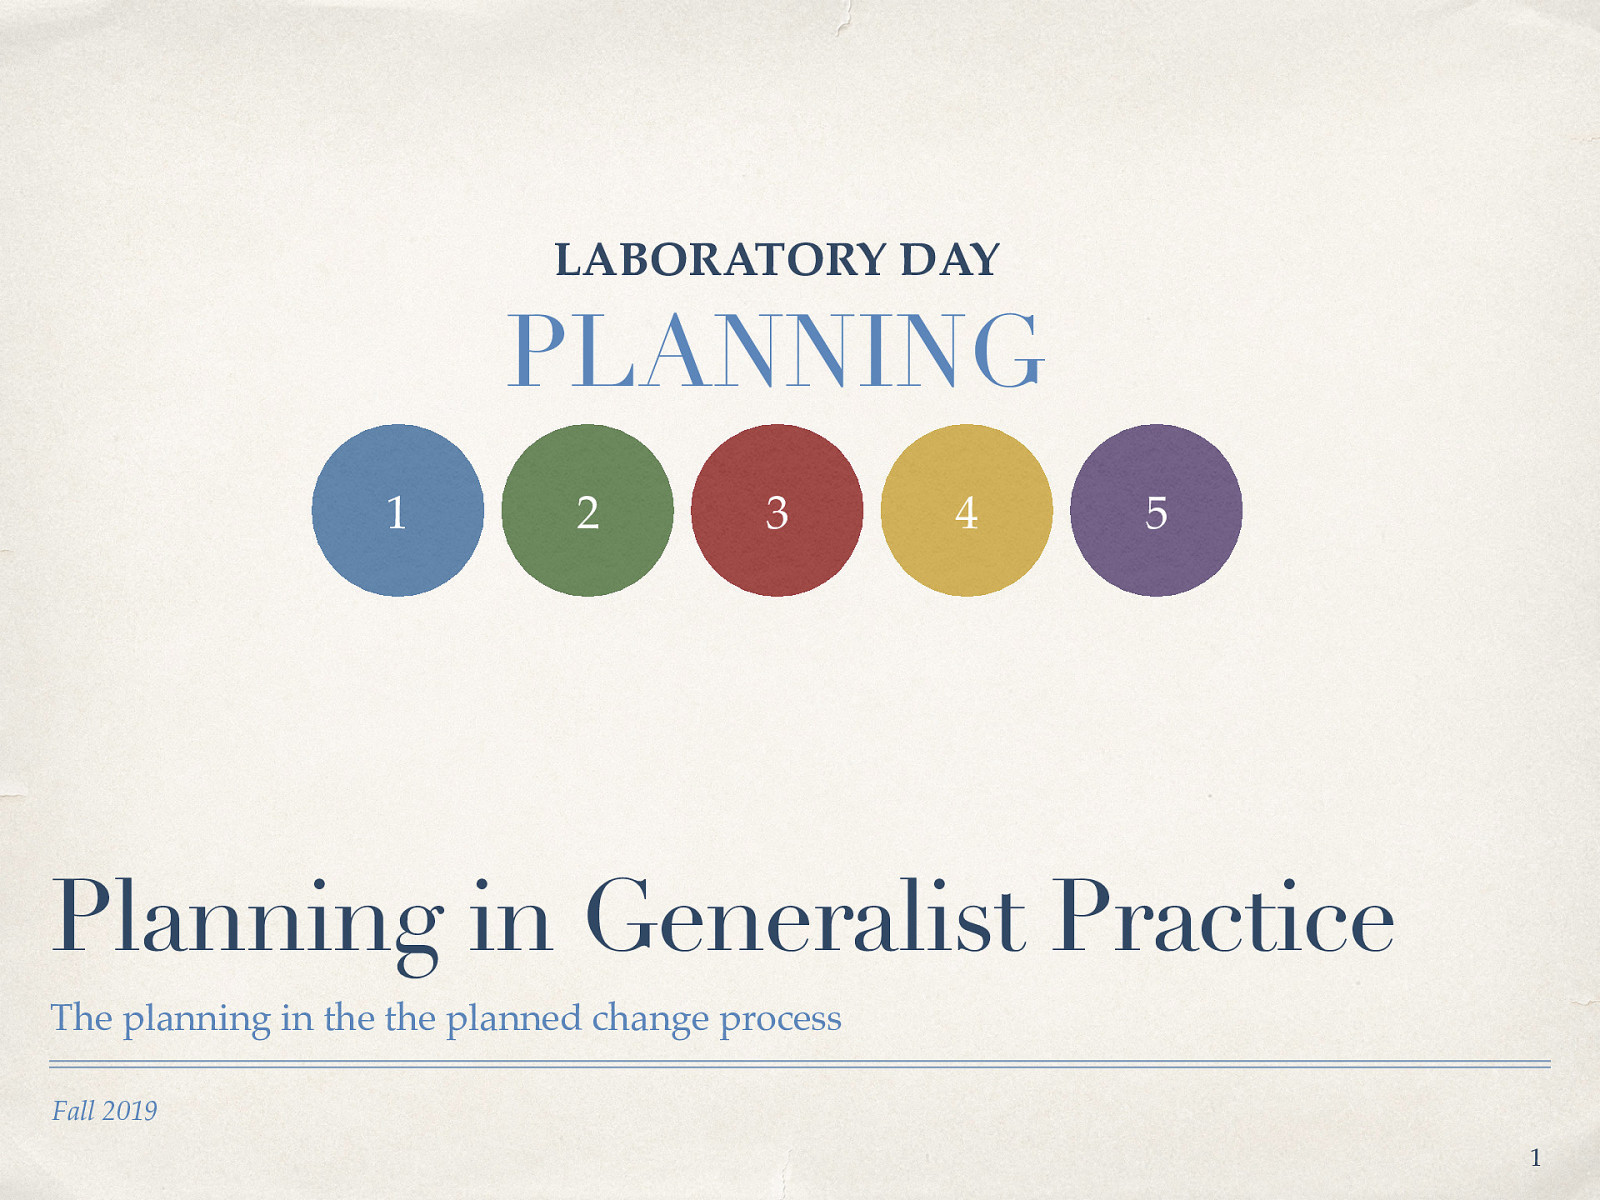 Week 11 - Lab Day - Planning in Generalist Practice